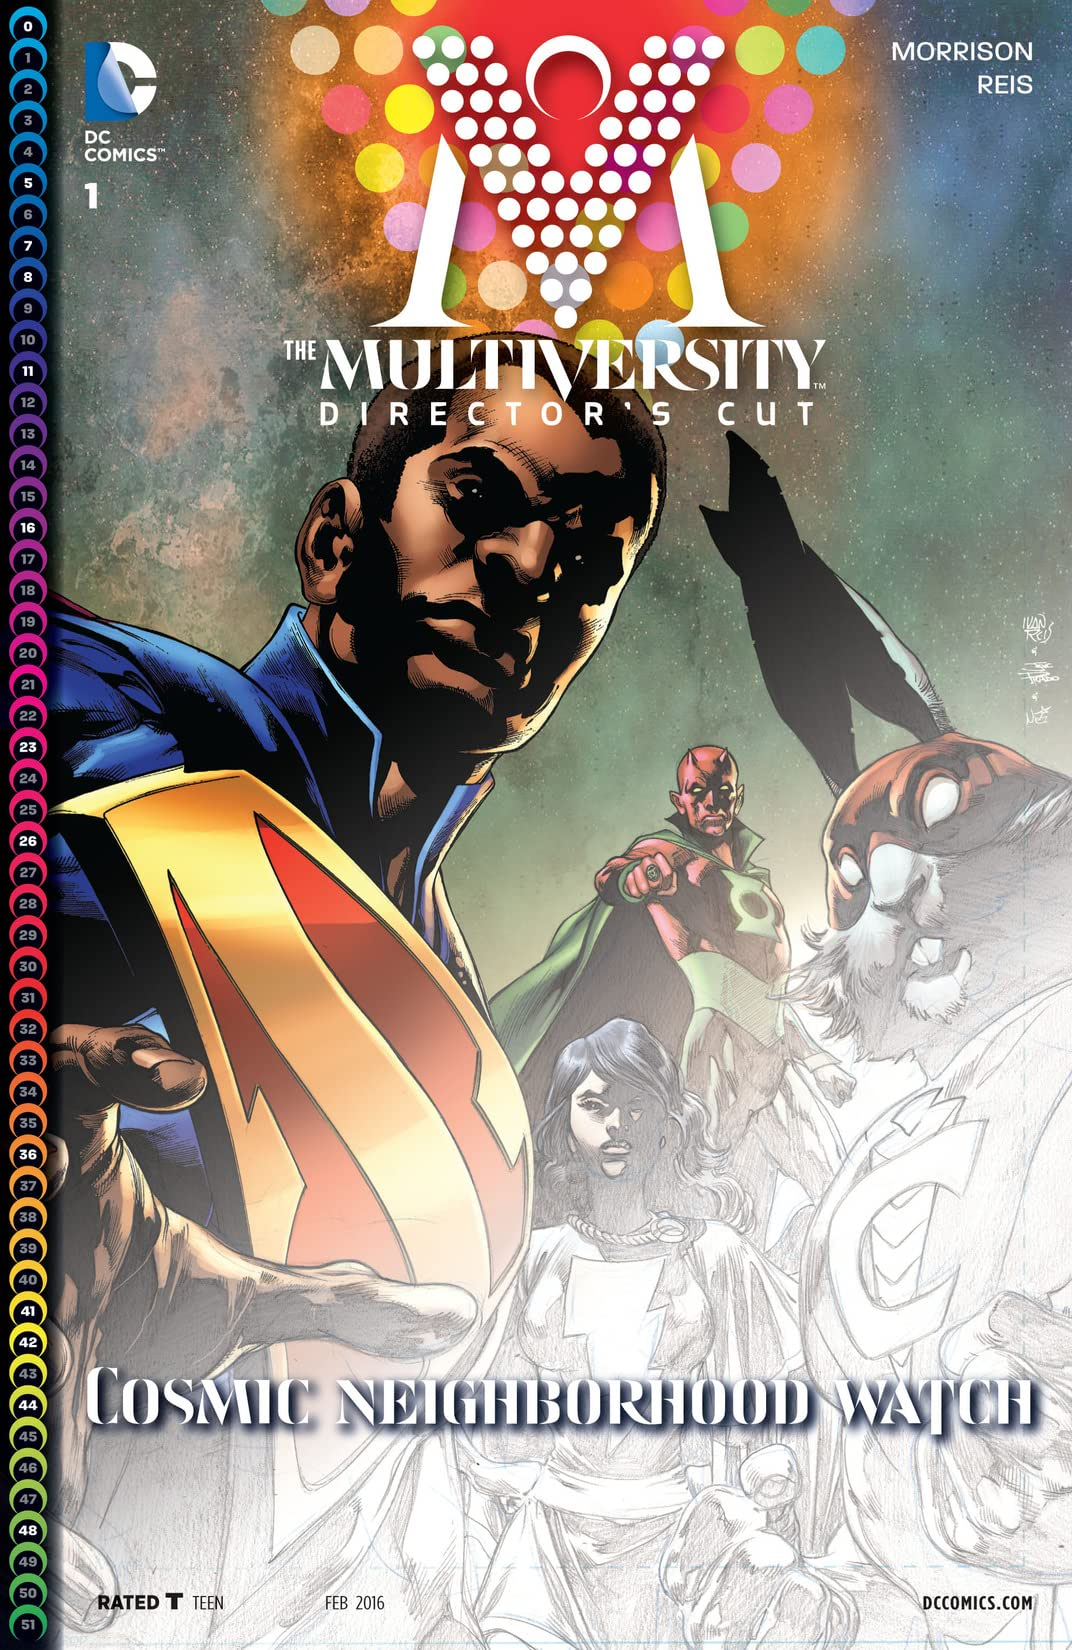 The Multiversity #1 & 2 Director's Cut (2015) #1